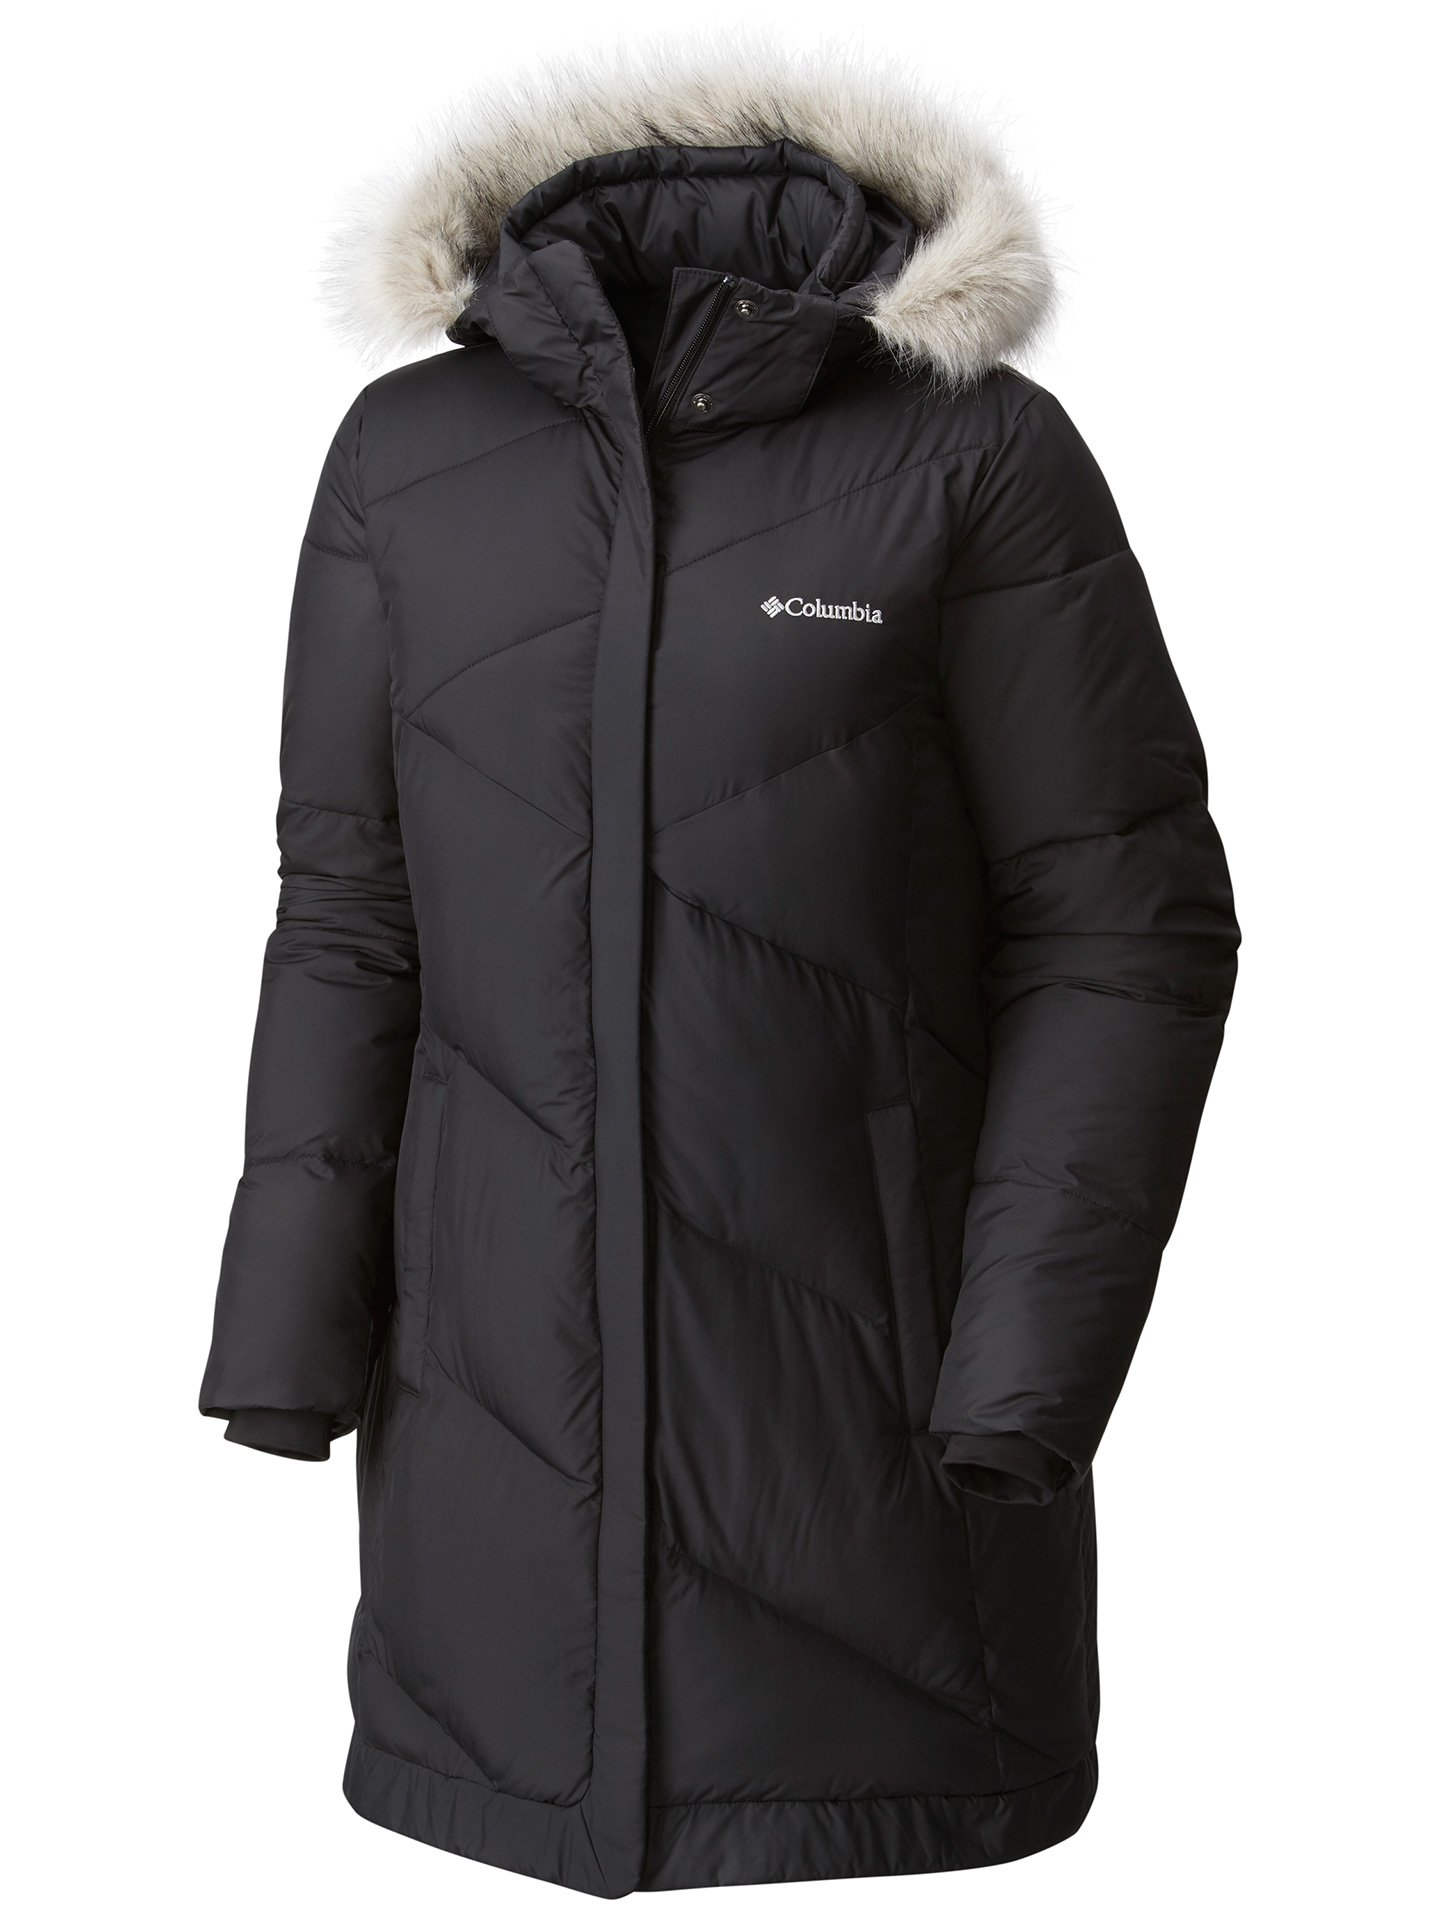 Columbia Women's Snow Eclipse Mid Jacket, Black, XL